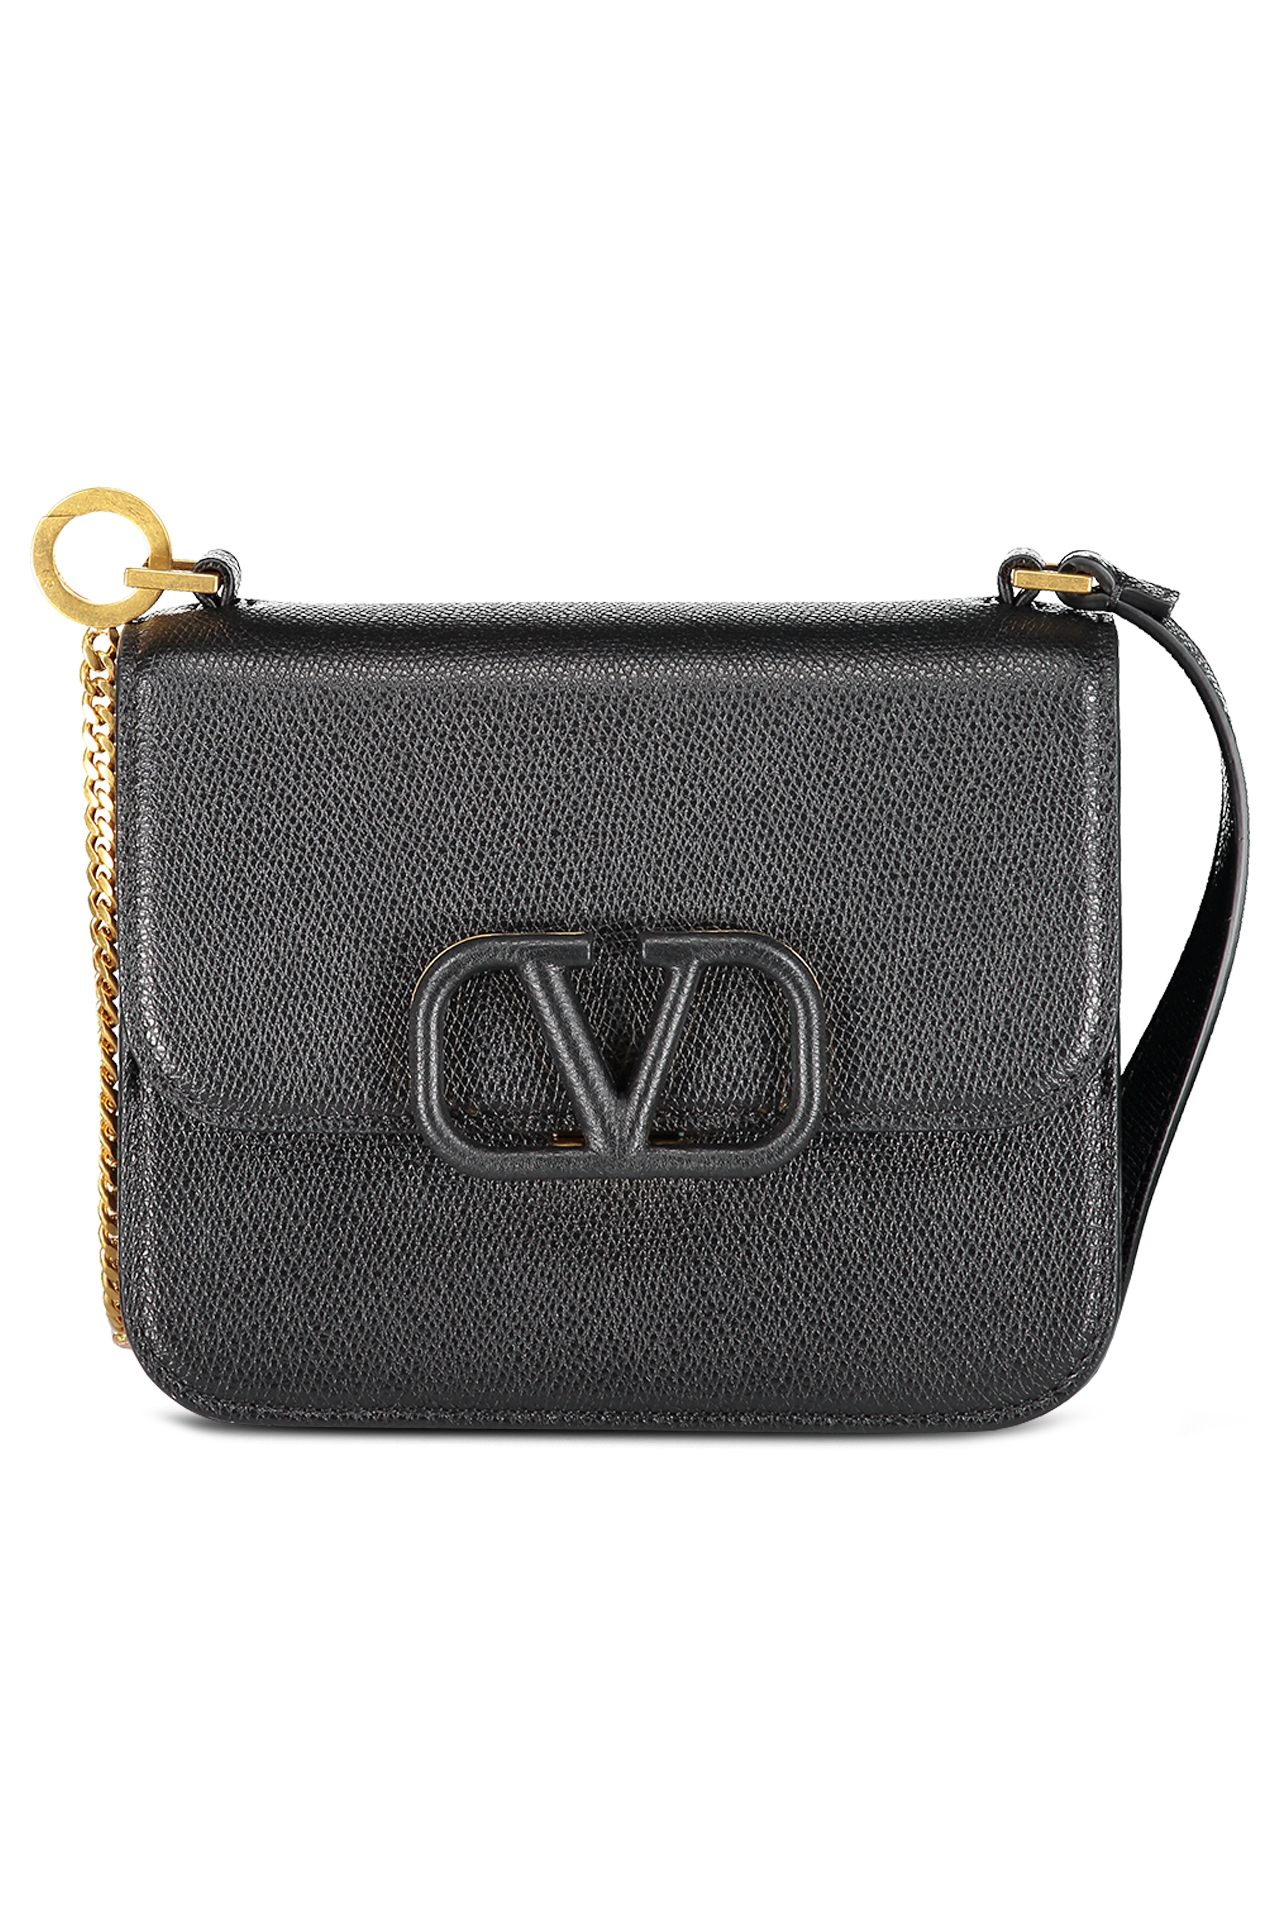 Side view image of Valentino Vsling Small Shoulder Bag Nero